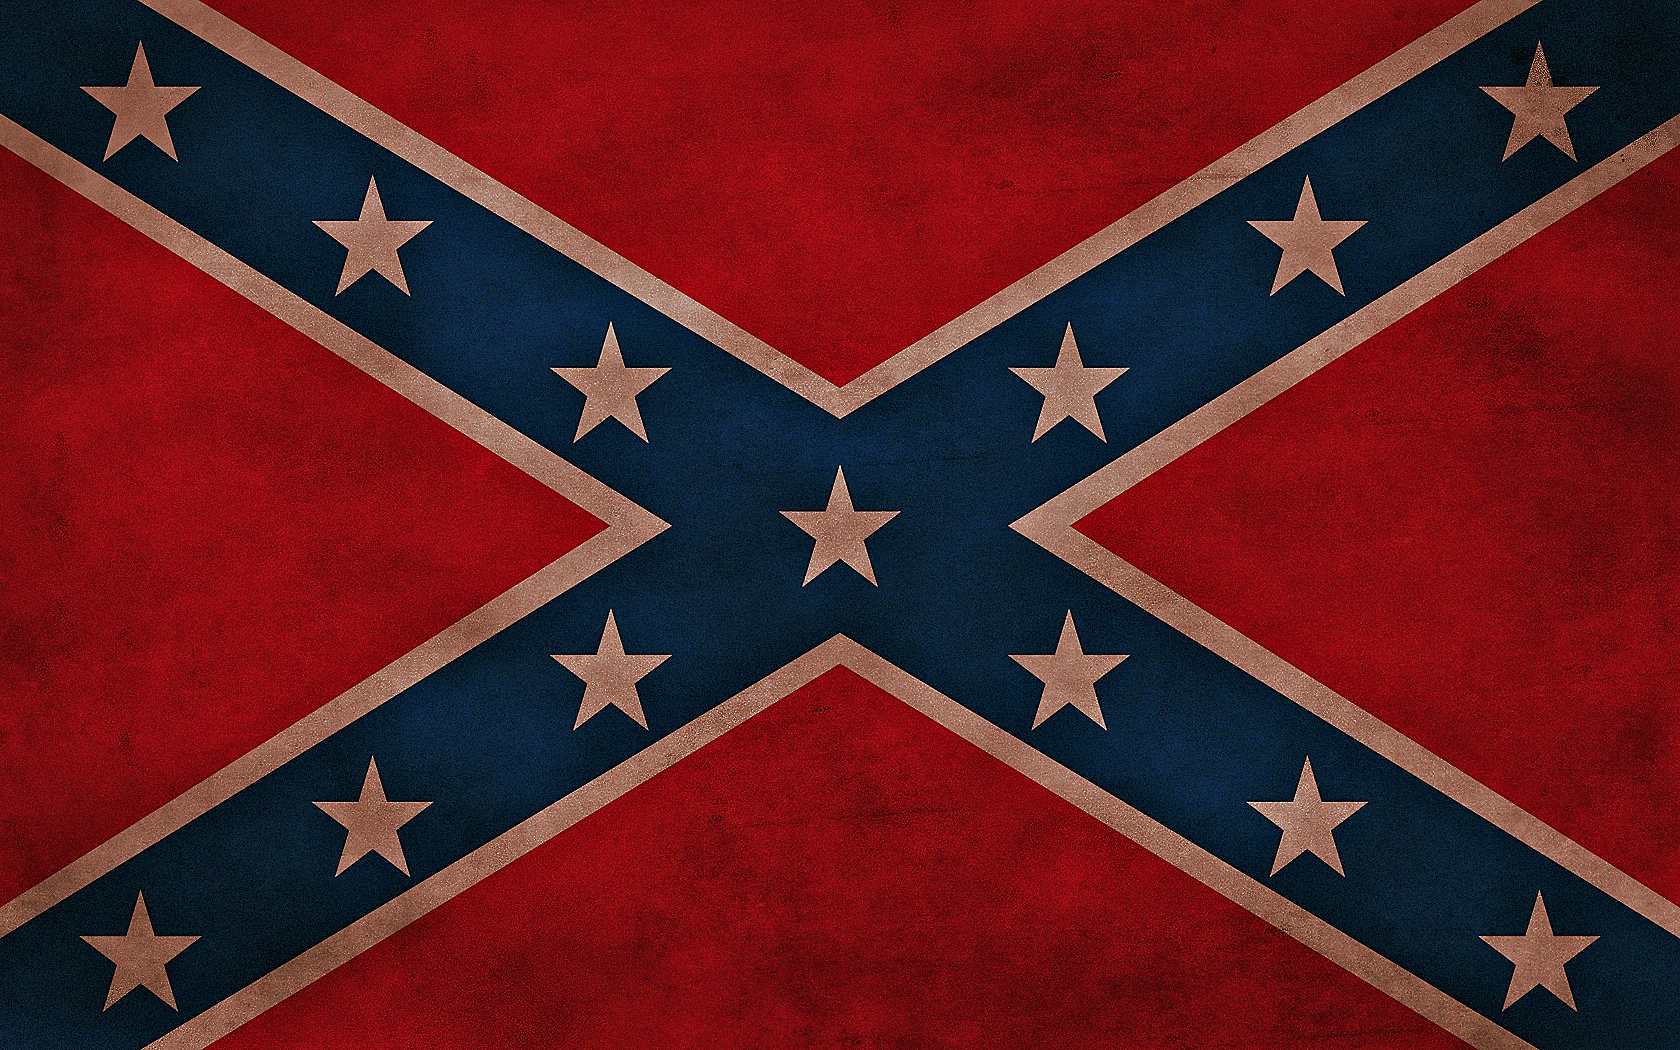 Confederate Flag Computer Wallpapers Desktop Backgrounds 1680x1050 1680x1050